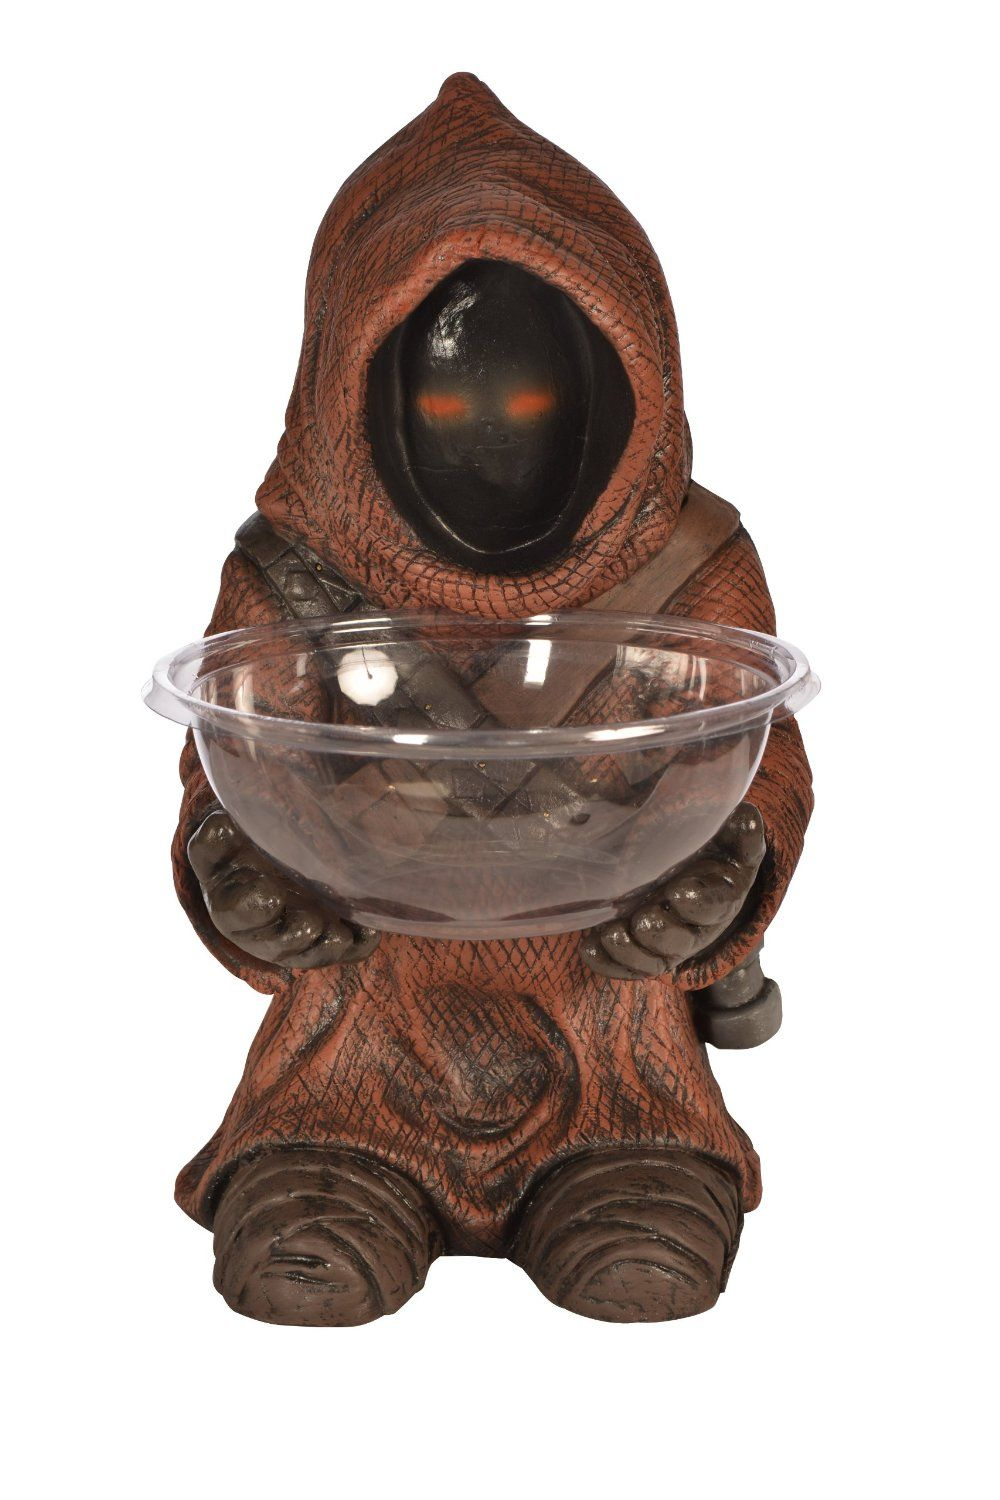 Star Wars Jawa Candy Bowl Holder✿❤Thank❤You✿I❤❤❤You❤✿